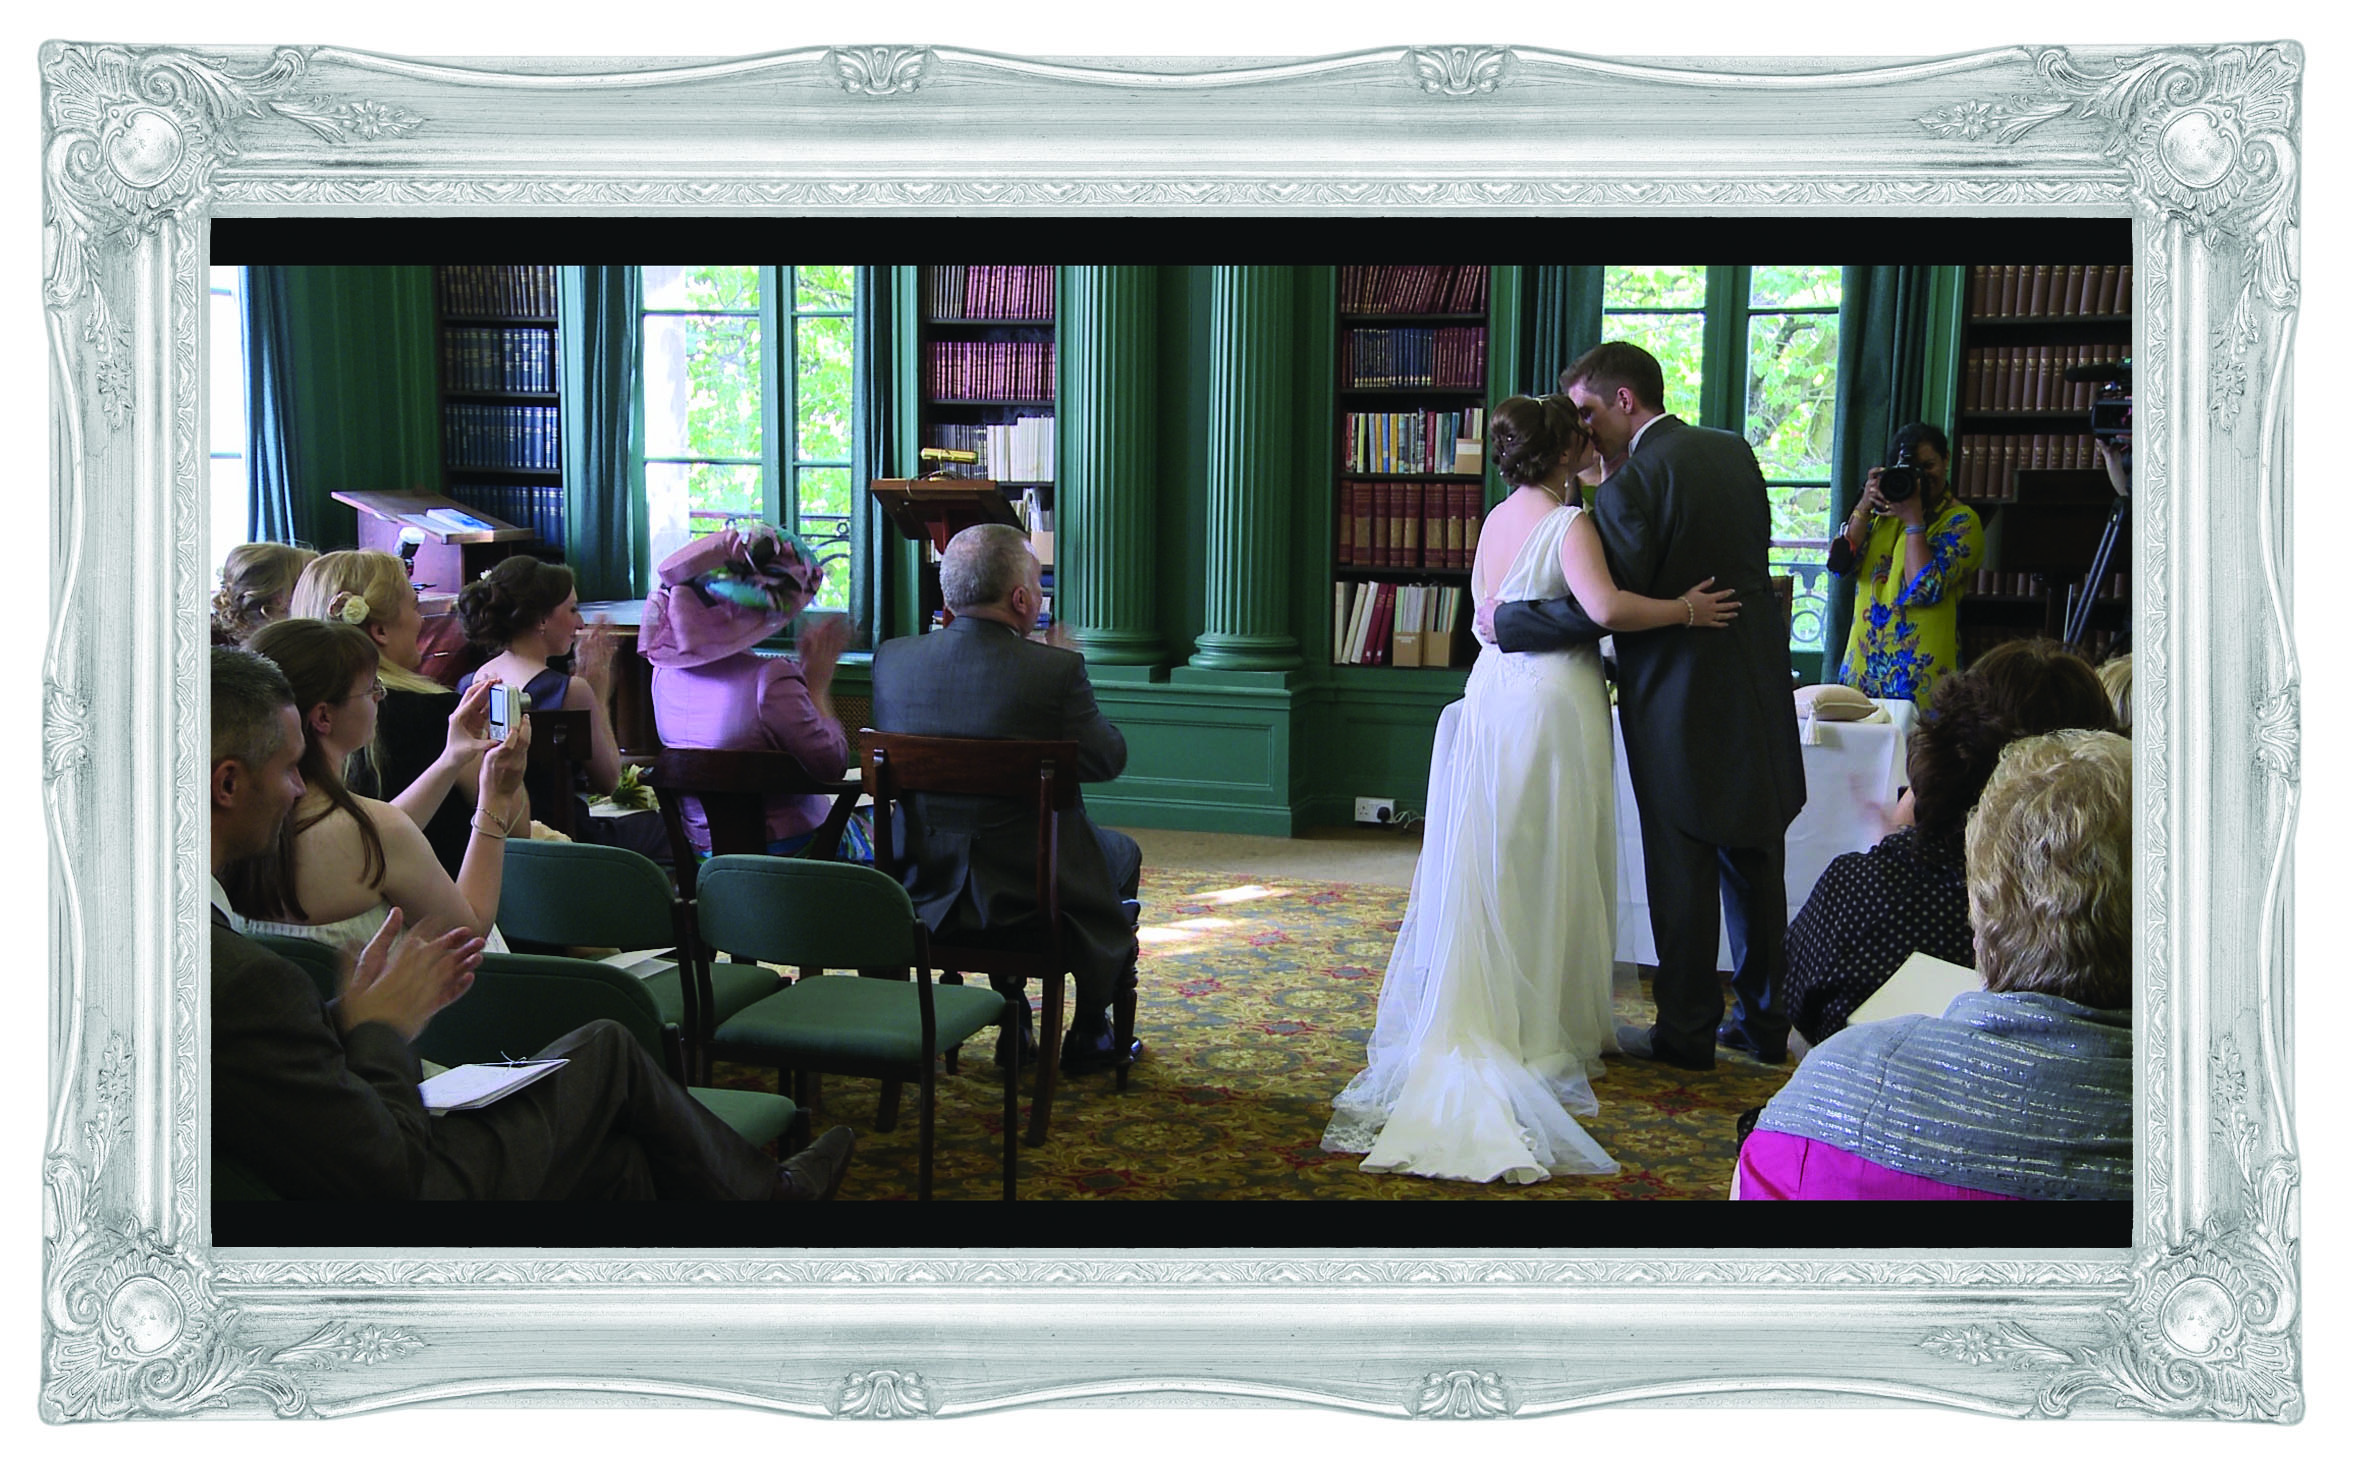 wedding ceremony in liverpool athenaeum as the bride and groom share a kiss in the famous green library for their vintage inspired wedding day